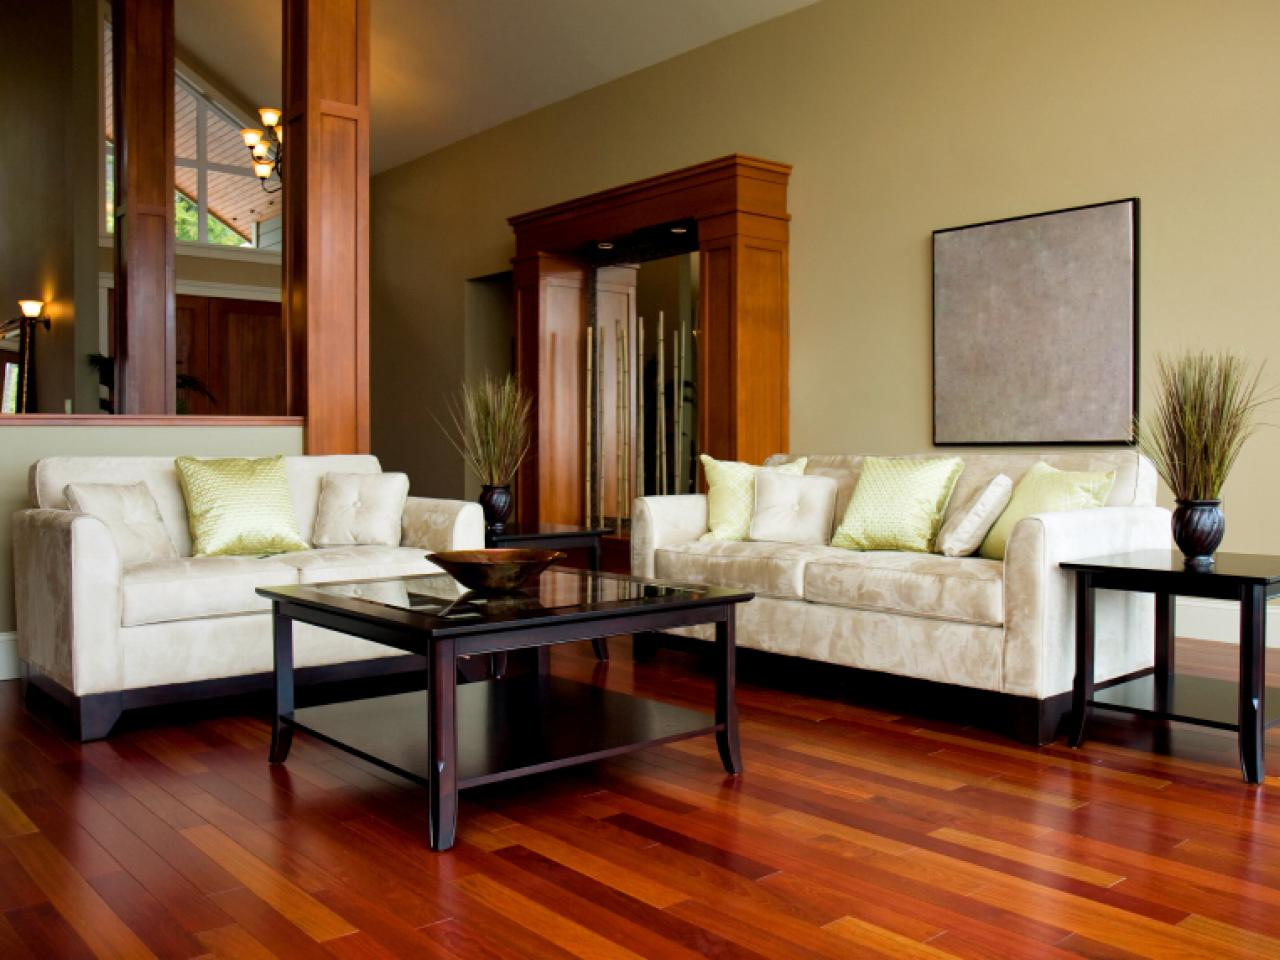 Living Room Flooring Ideas Pictures. Related To  Guide to Selecting Flooring DIY